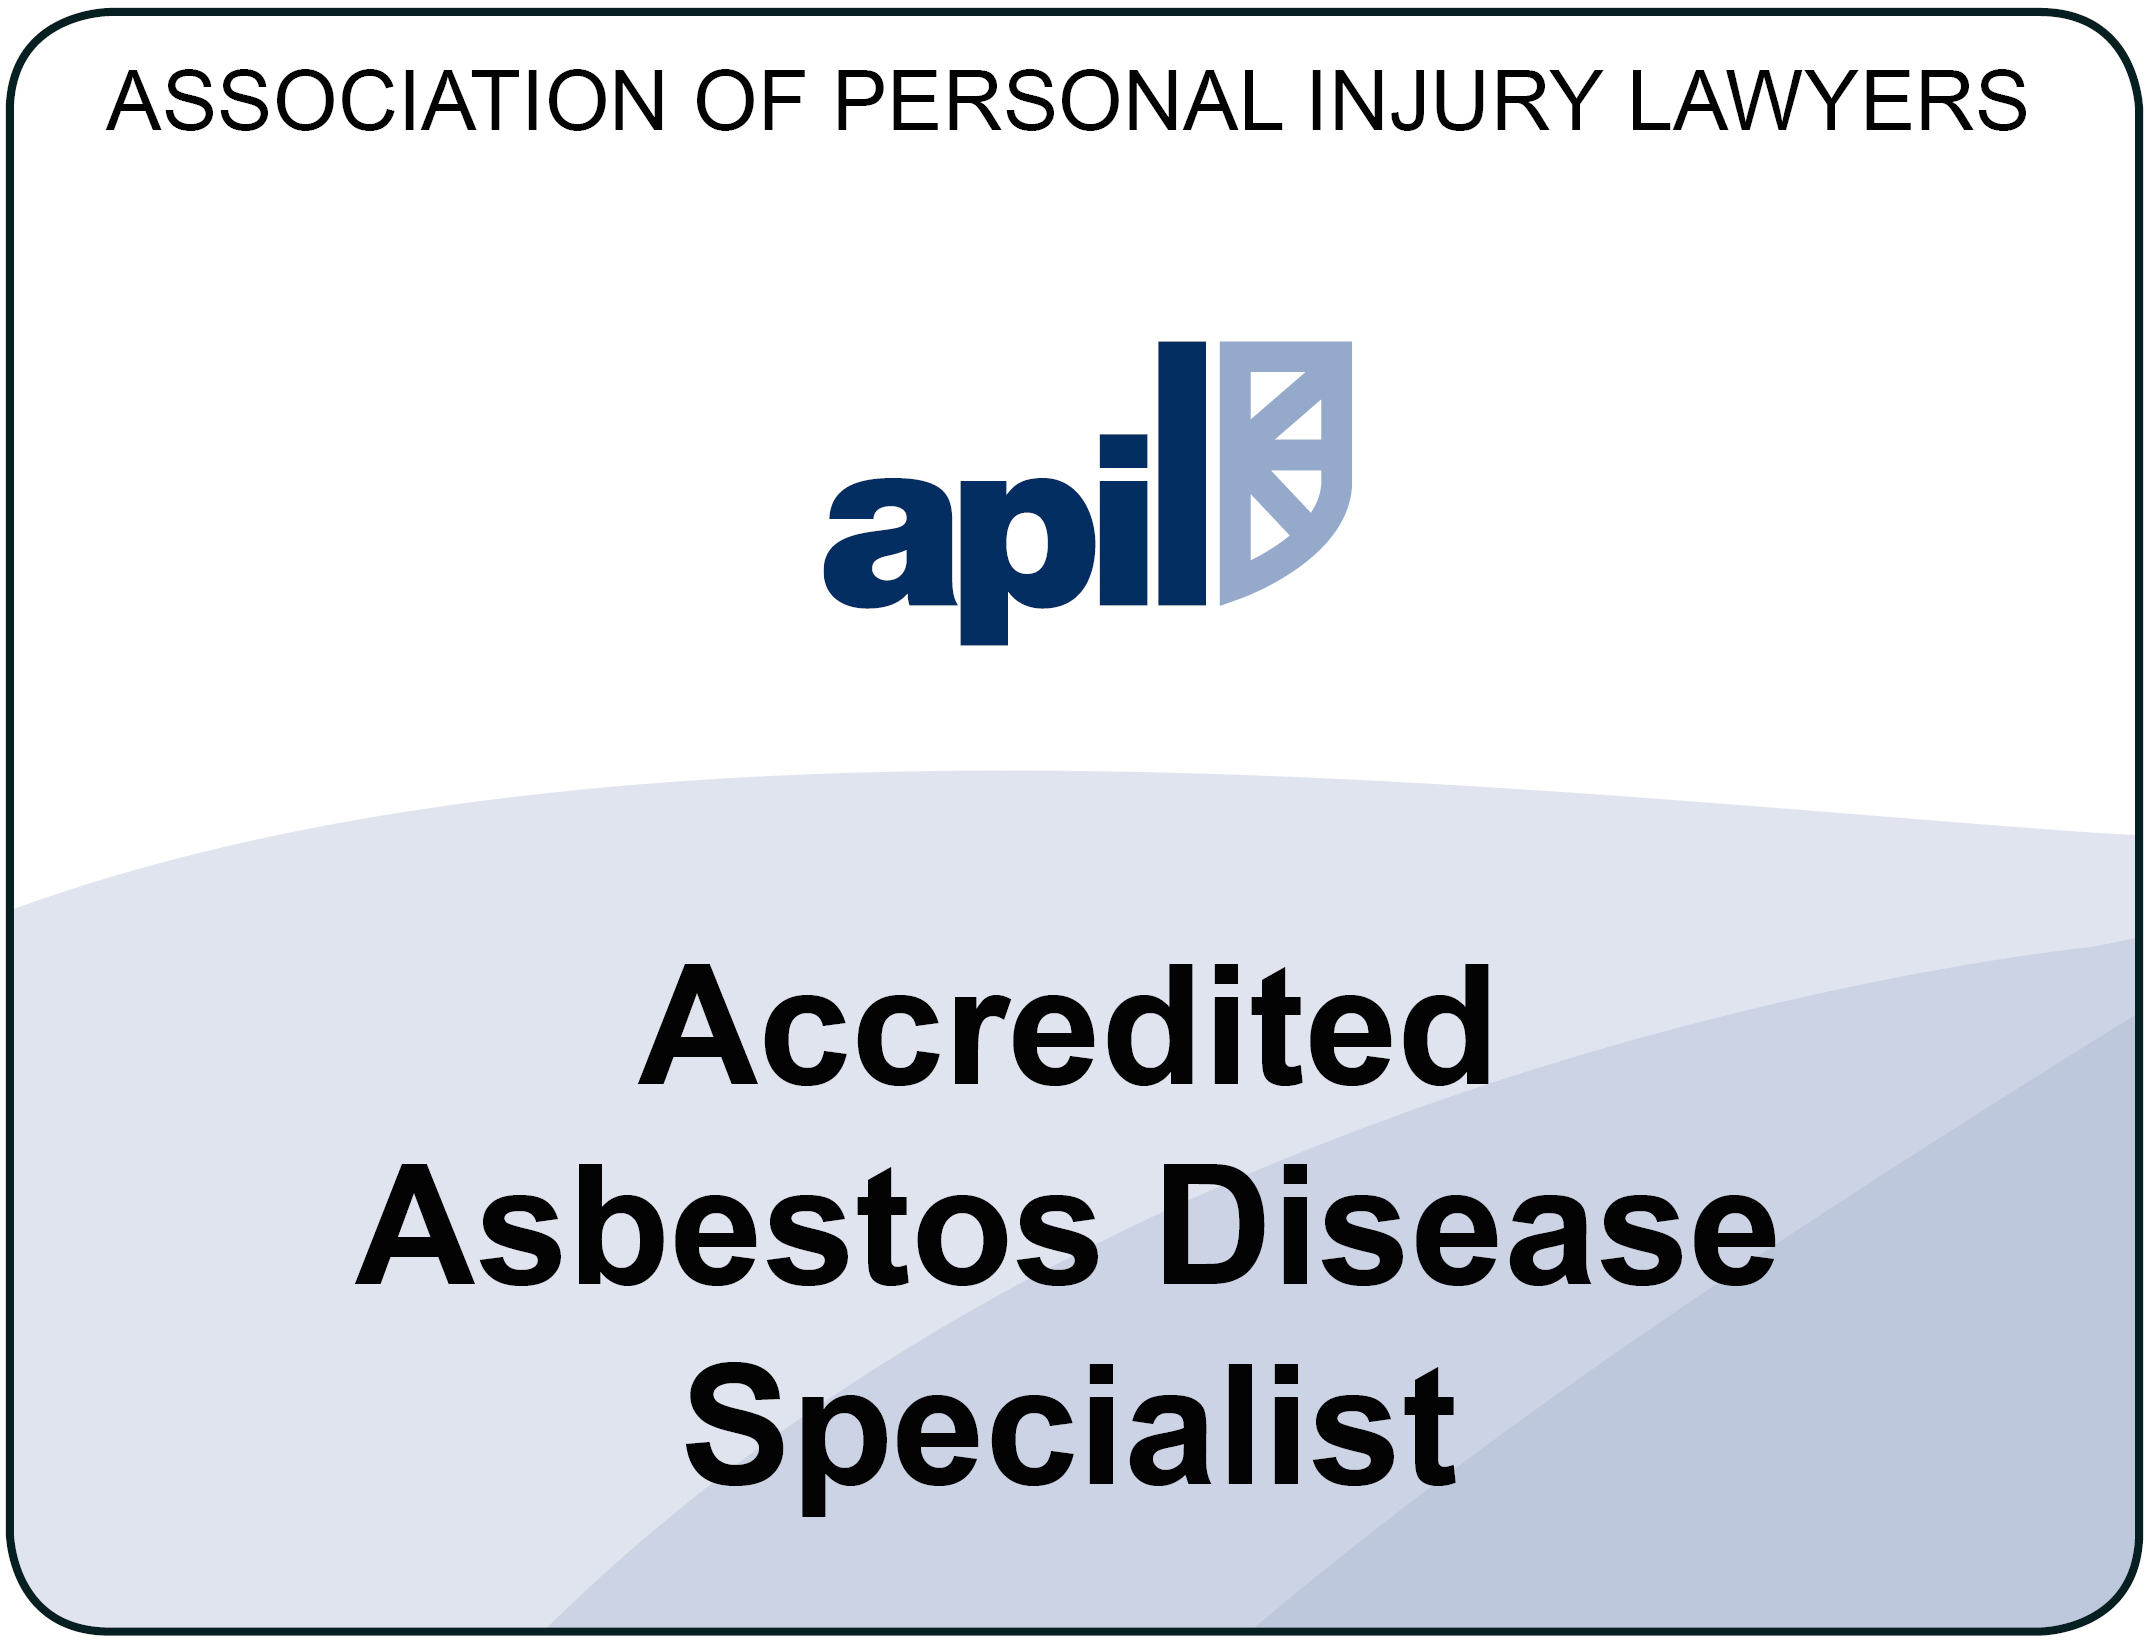 Paul Glanville is an Accredited Asbestos Disease Specialist - Association of Personal Injury Lawyers